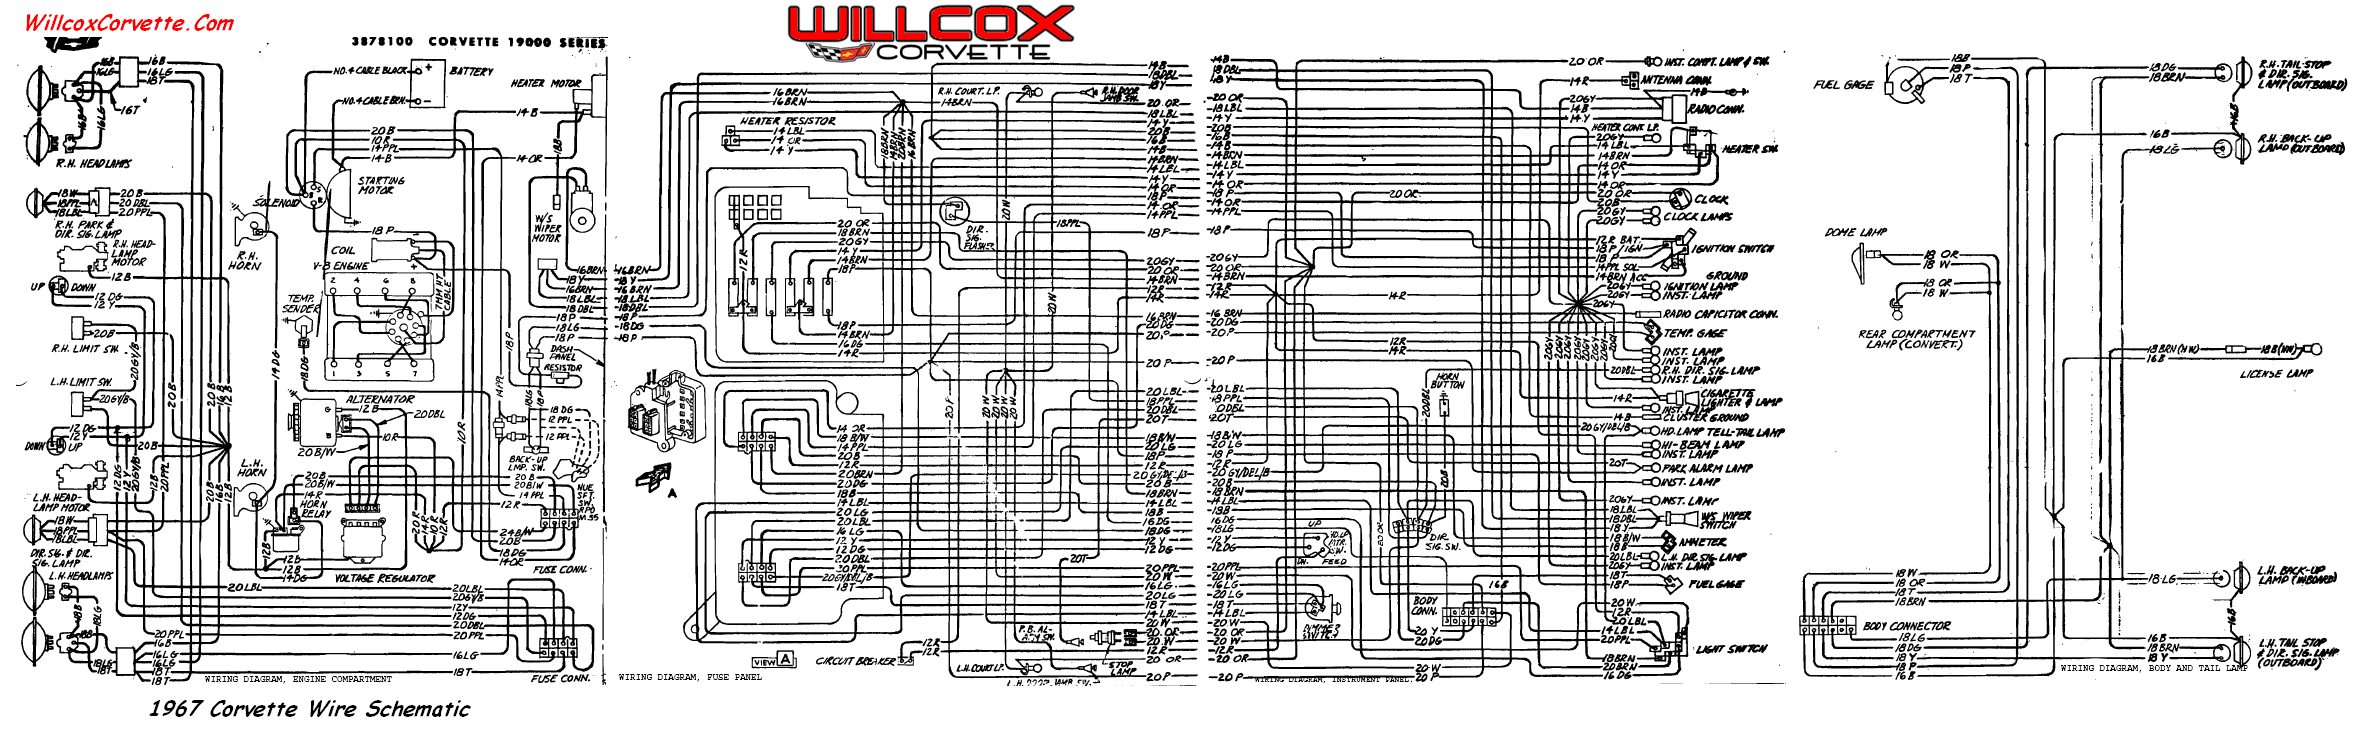 1968 Corvette Wiring Diagram 1993 Corvette Wiring Diagram • Free ...